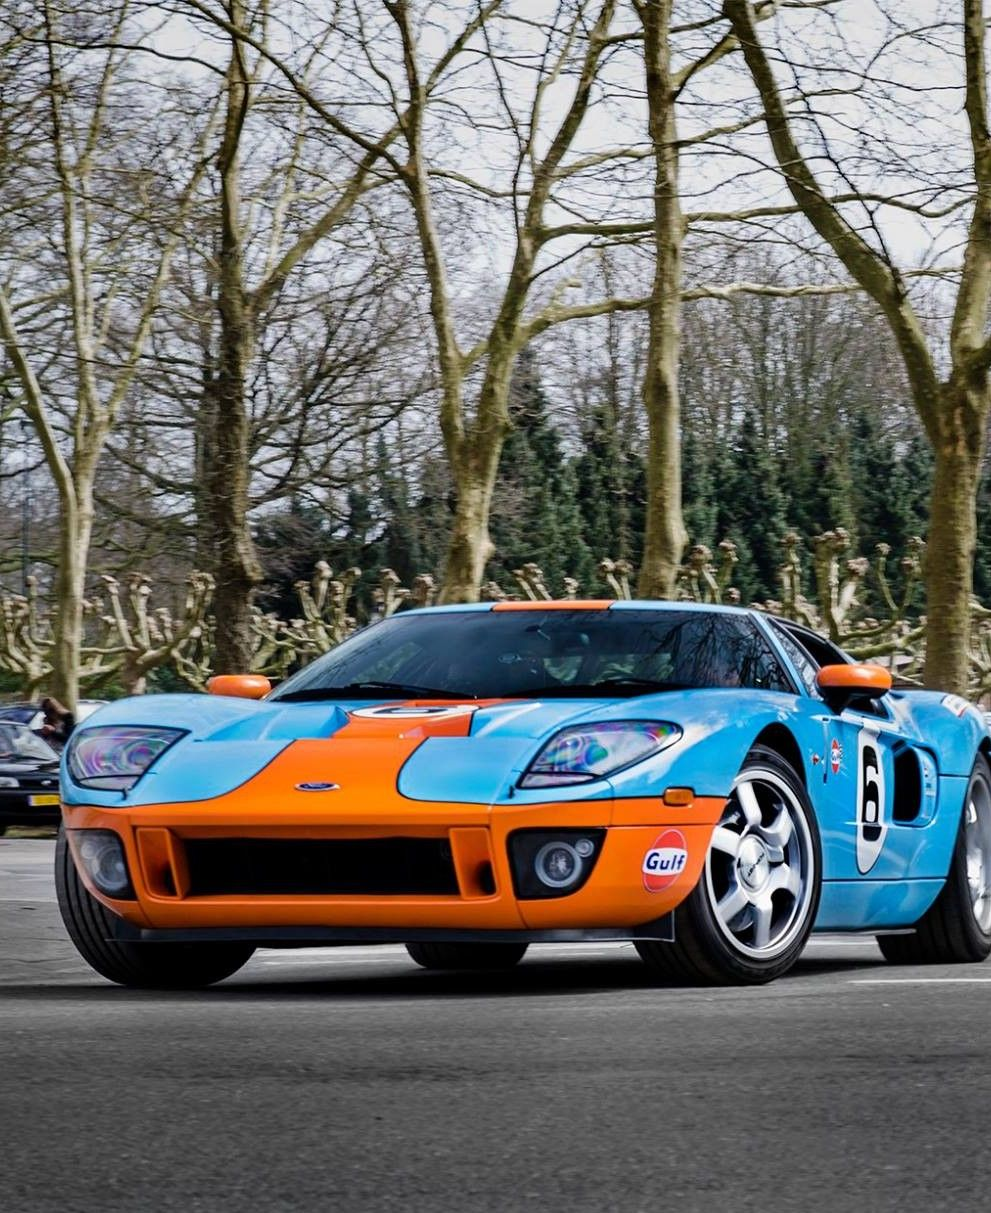 Ford Gt Gulf Livery Ford Gt Classic Cars Usa Ford Gt Gulf